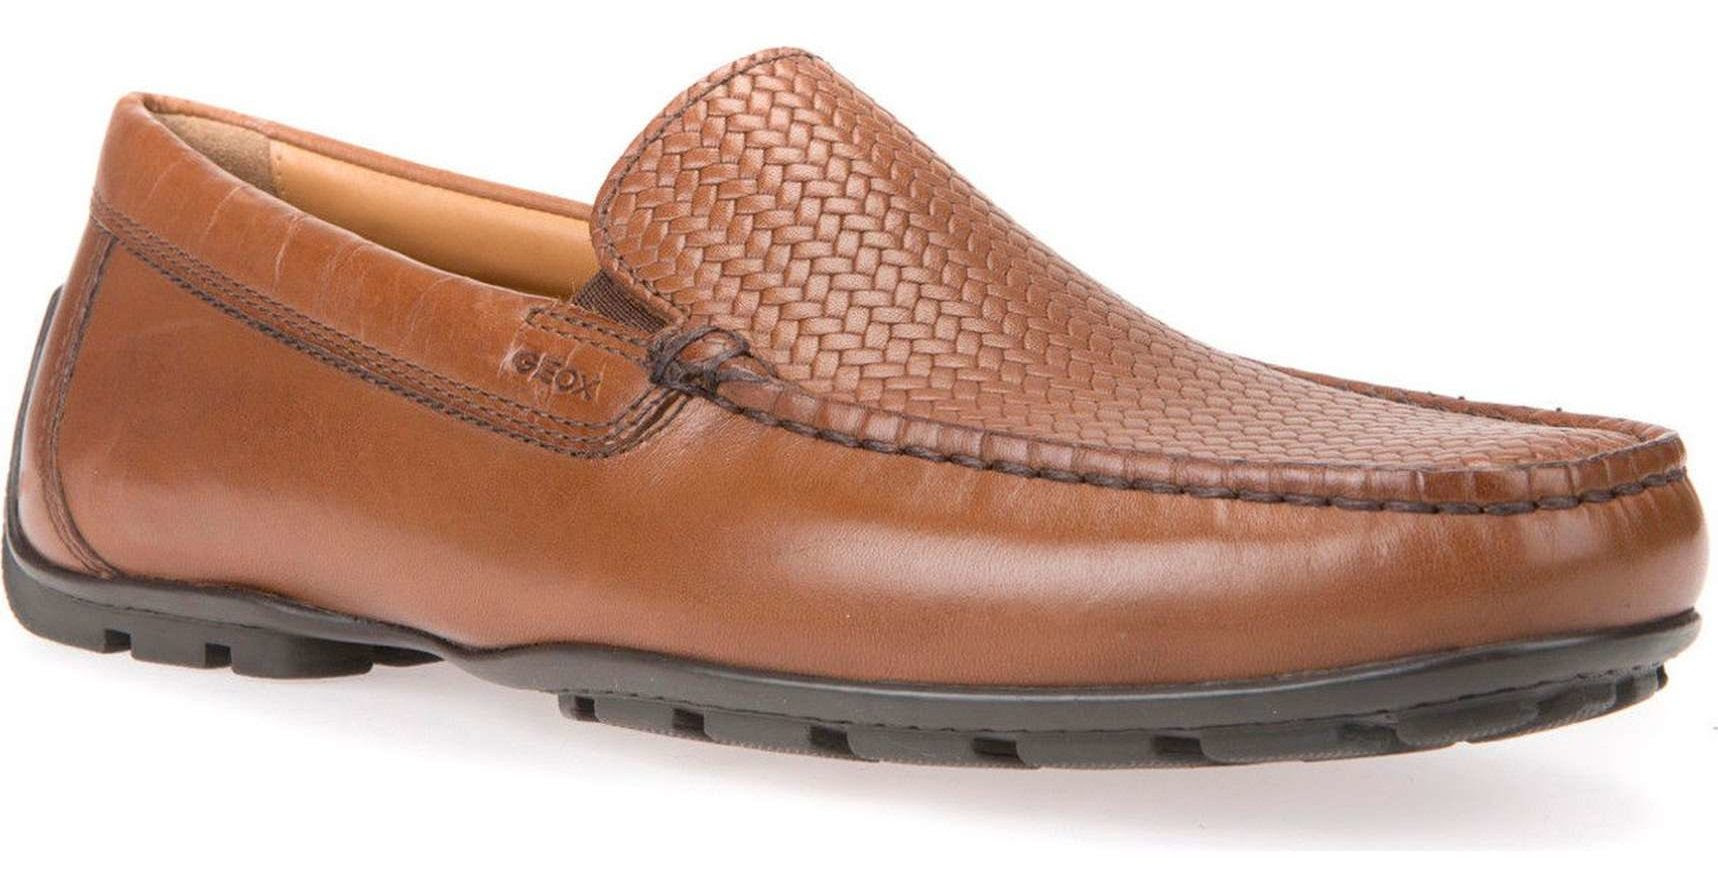 10 Best Loafers For Men 2018 – Mens Penny Loafer, Driving ...